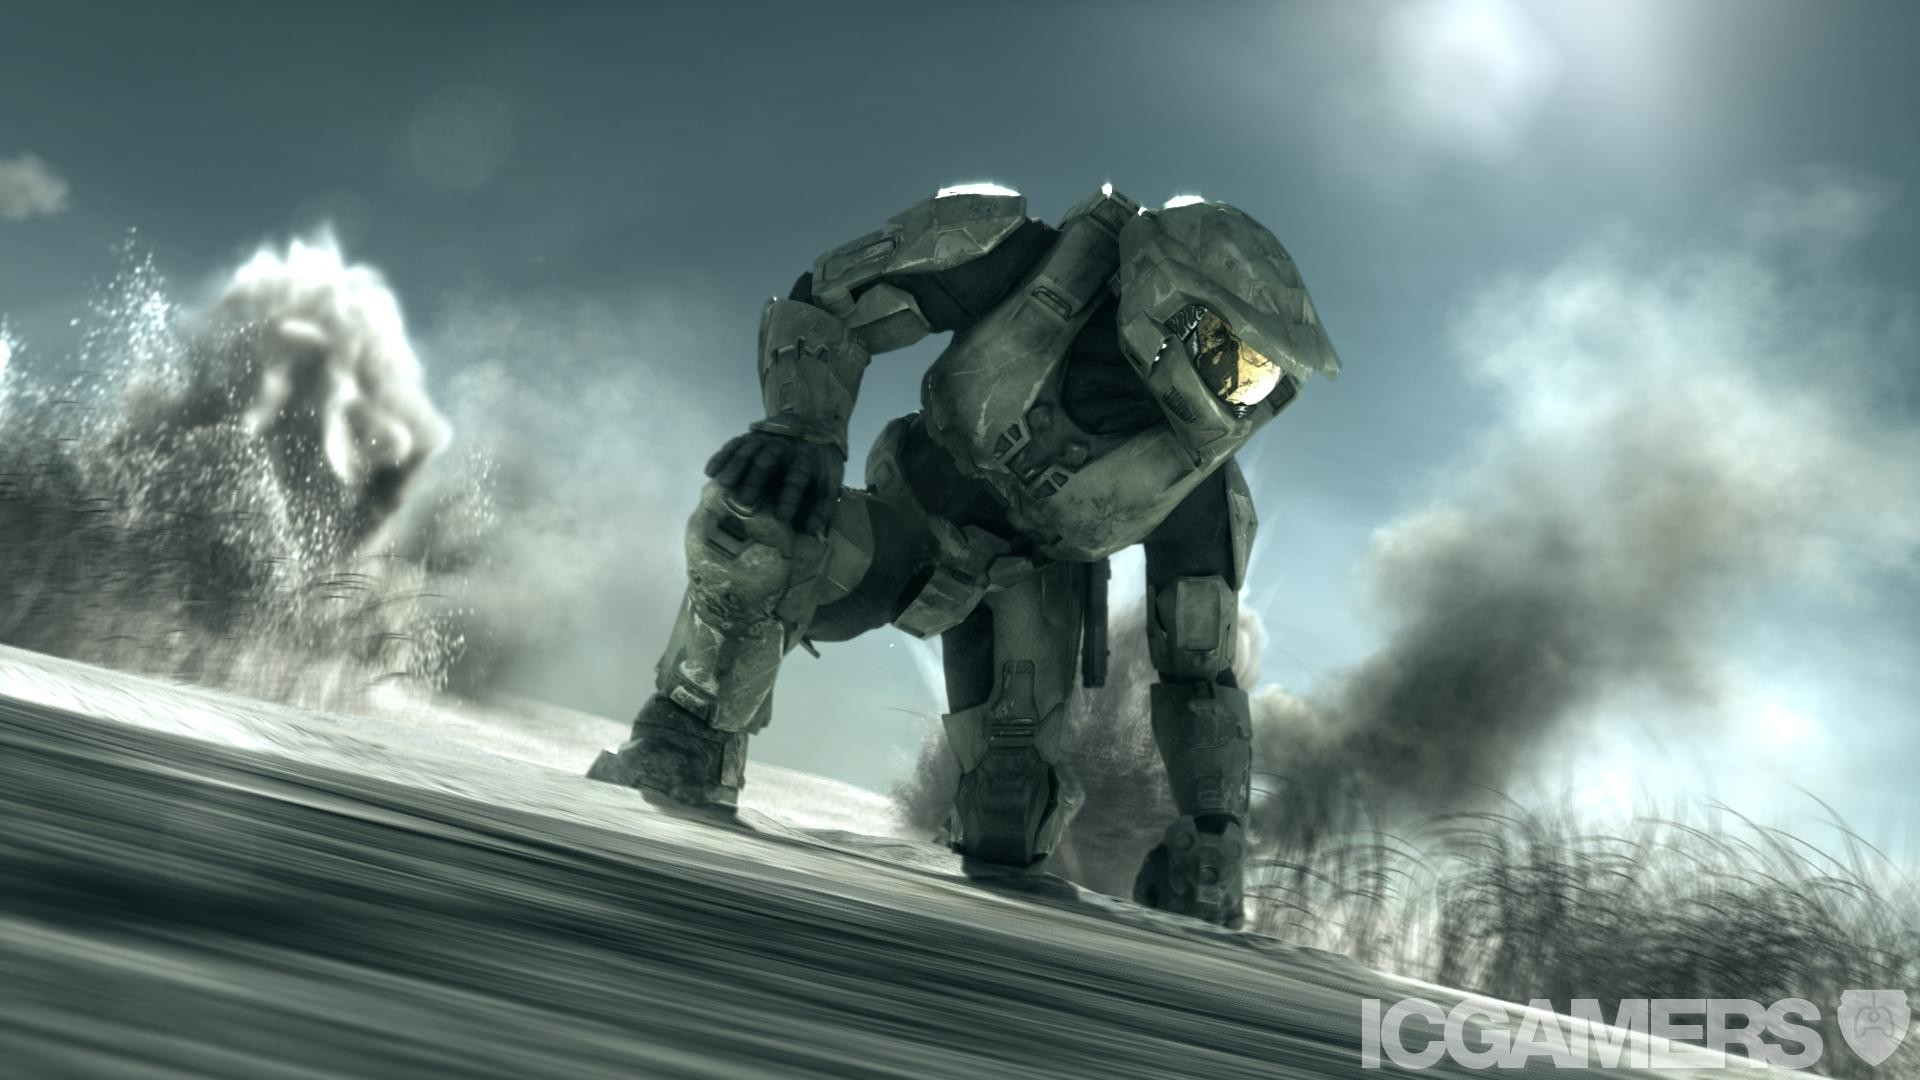 Halo 3 Wallpaper Download Free Beautiful Full Hd Backgrounds For